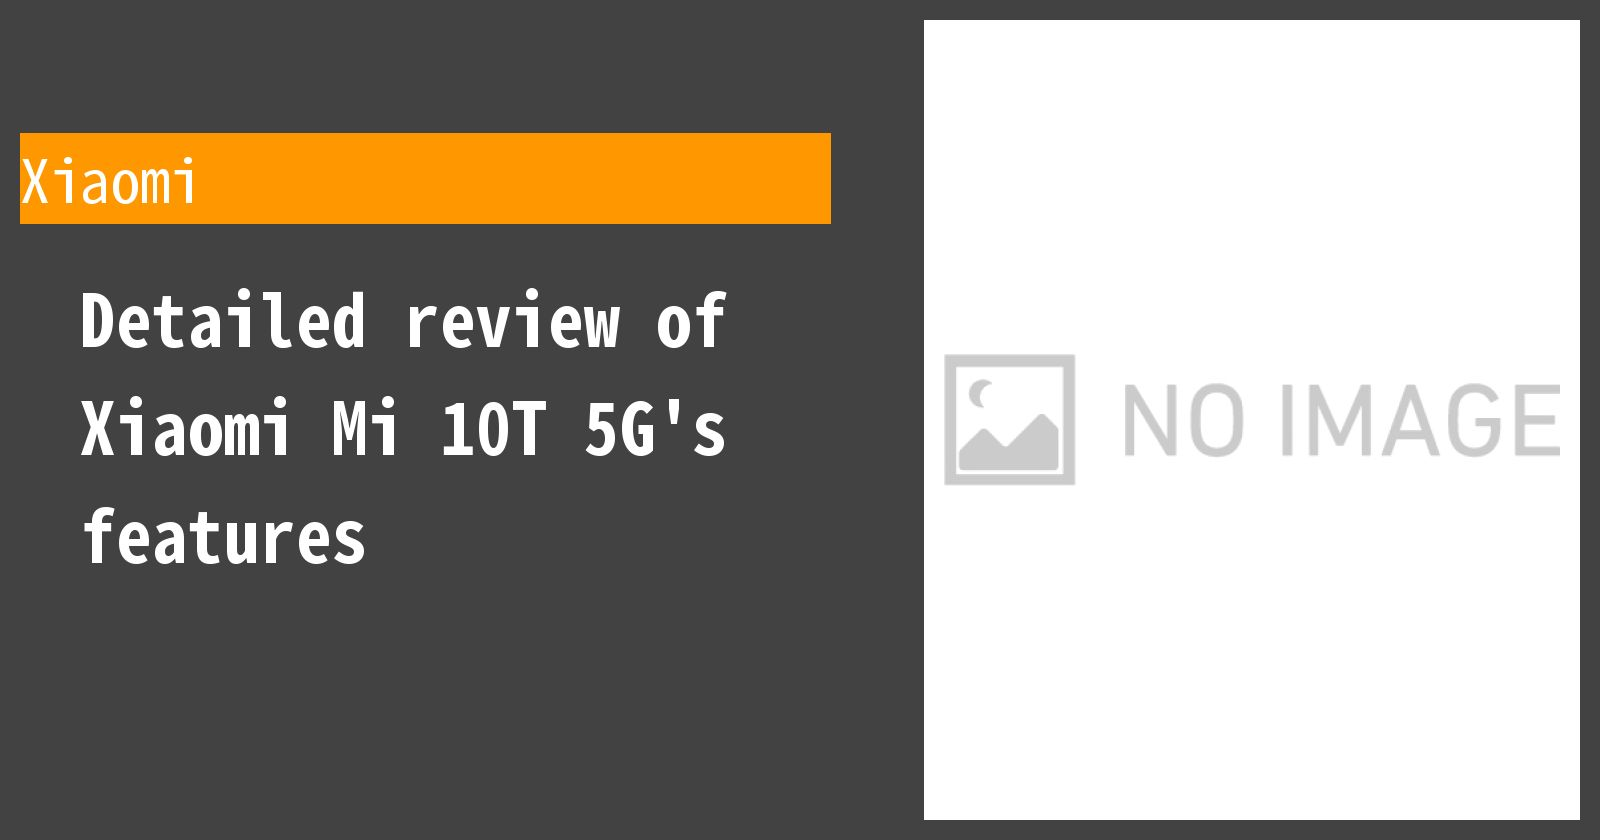 Detailed review of Xiaomi Mi 10T 5G's features